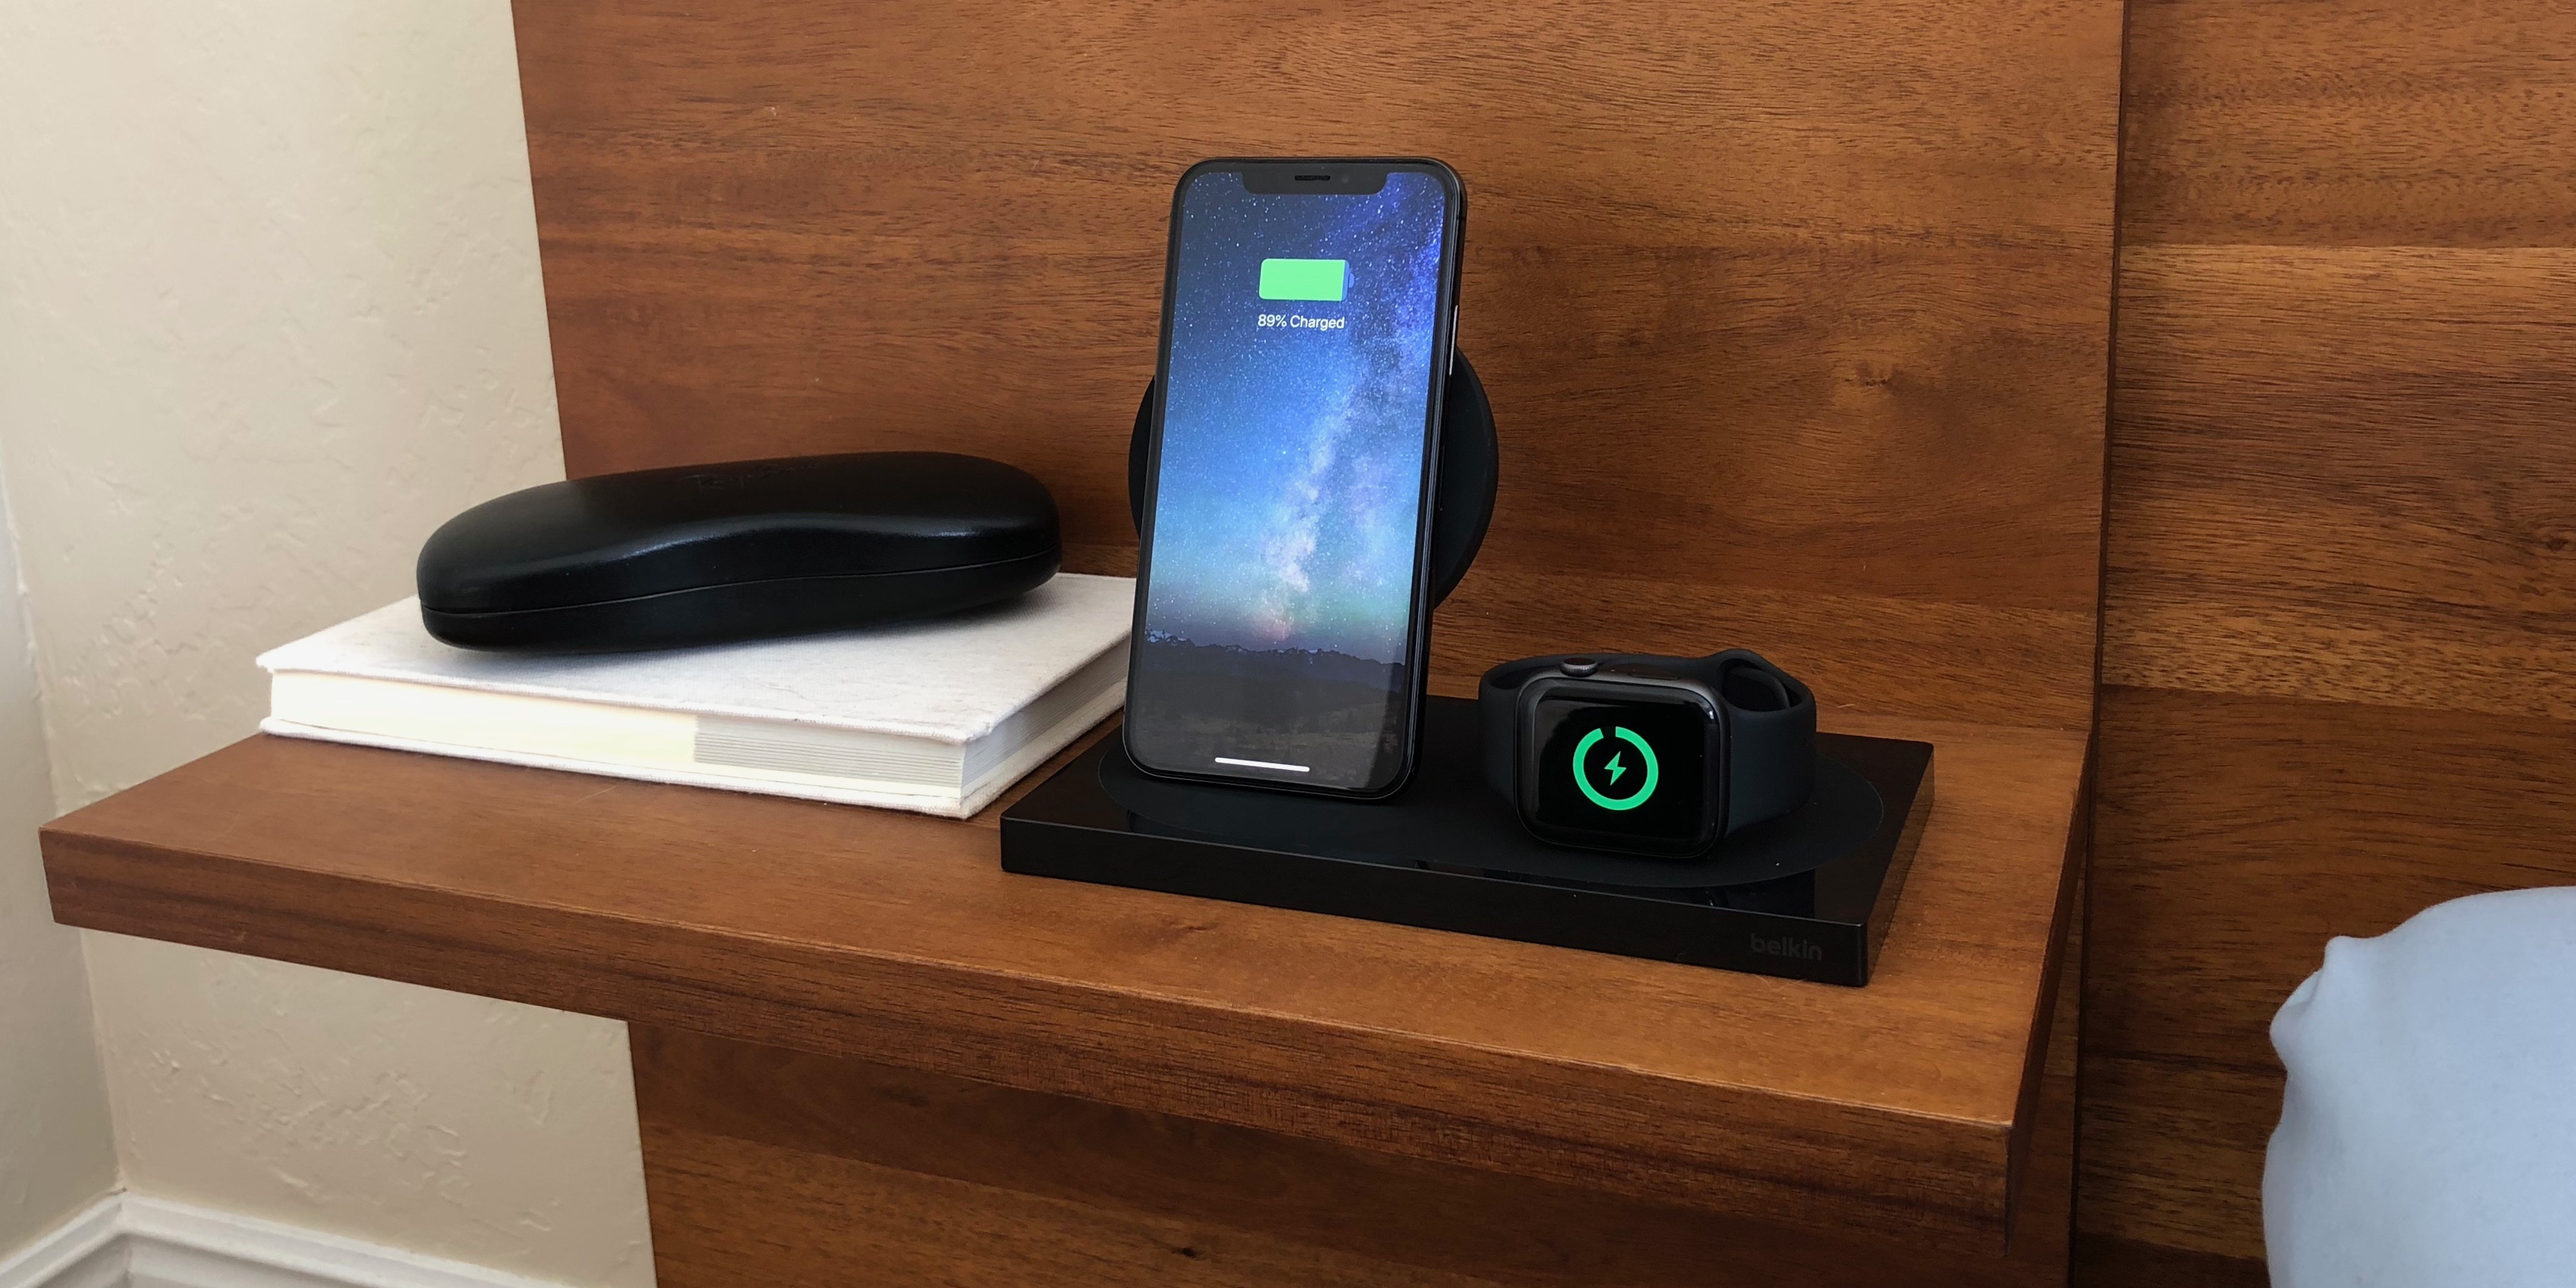 Hands On With A Great Airpower Alternative From Belkin